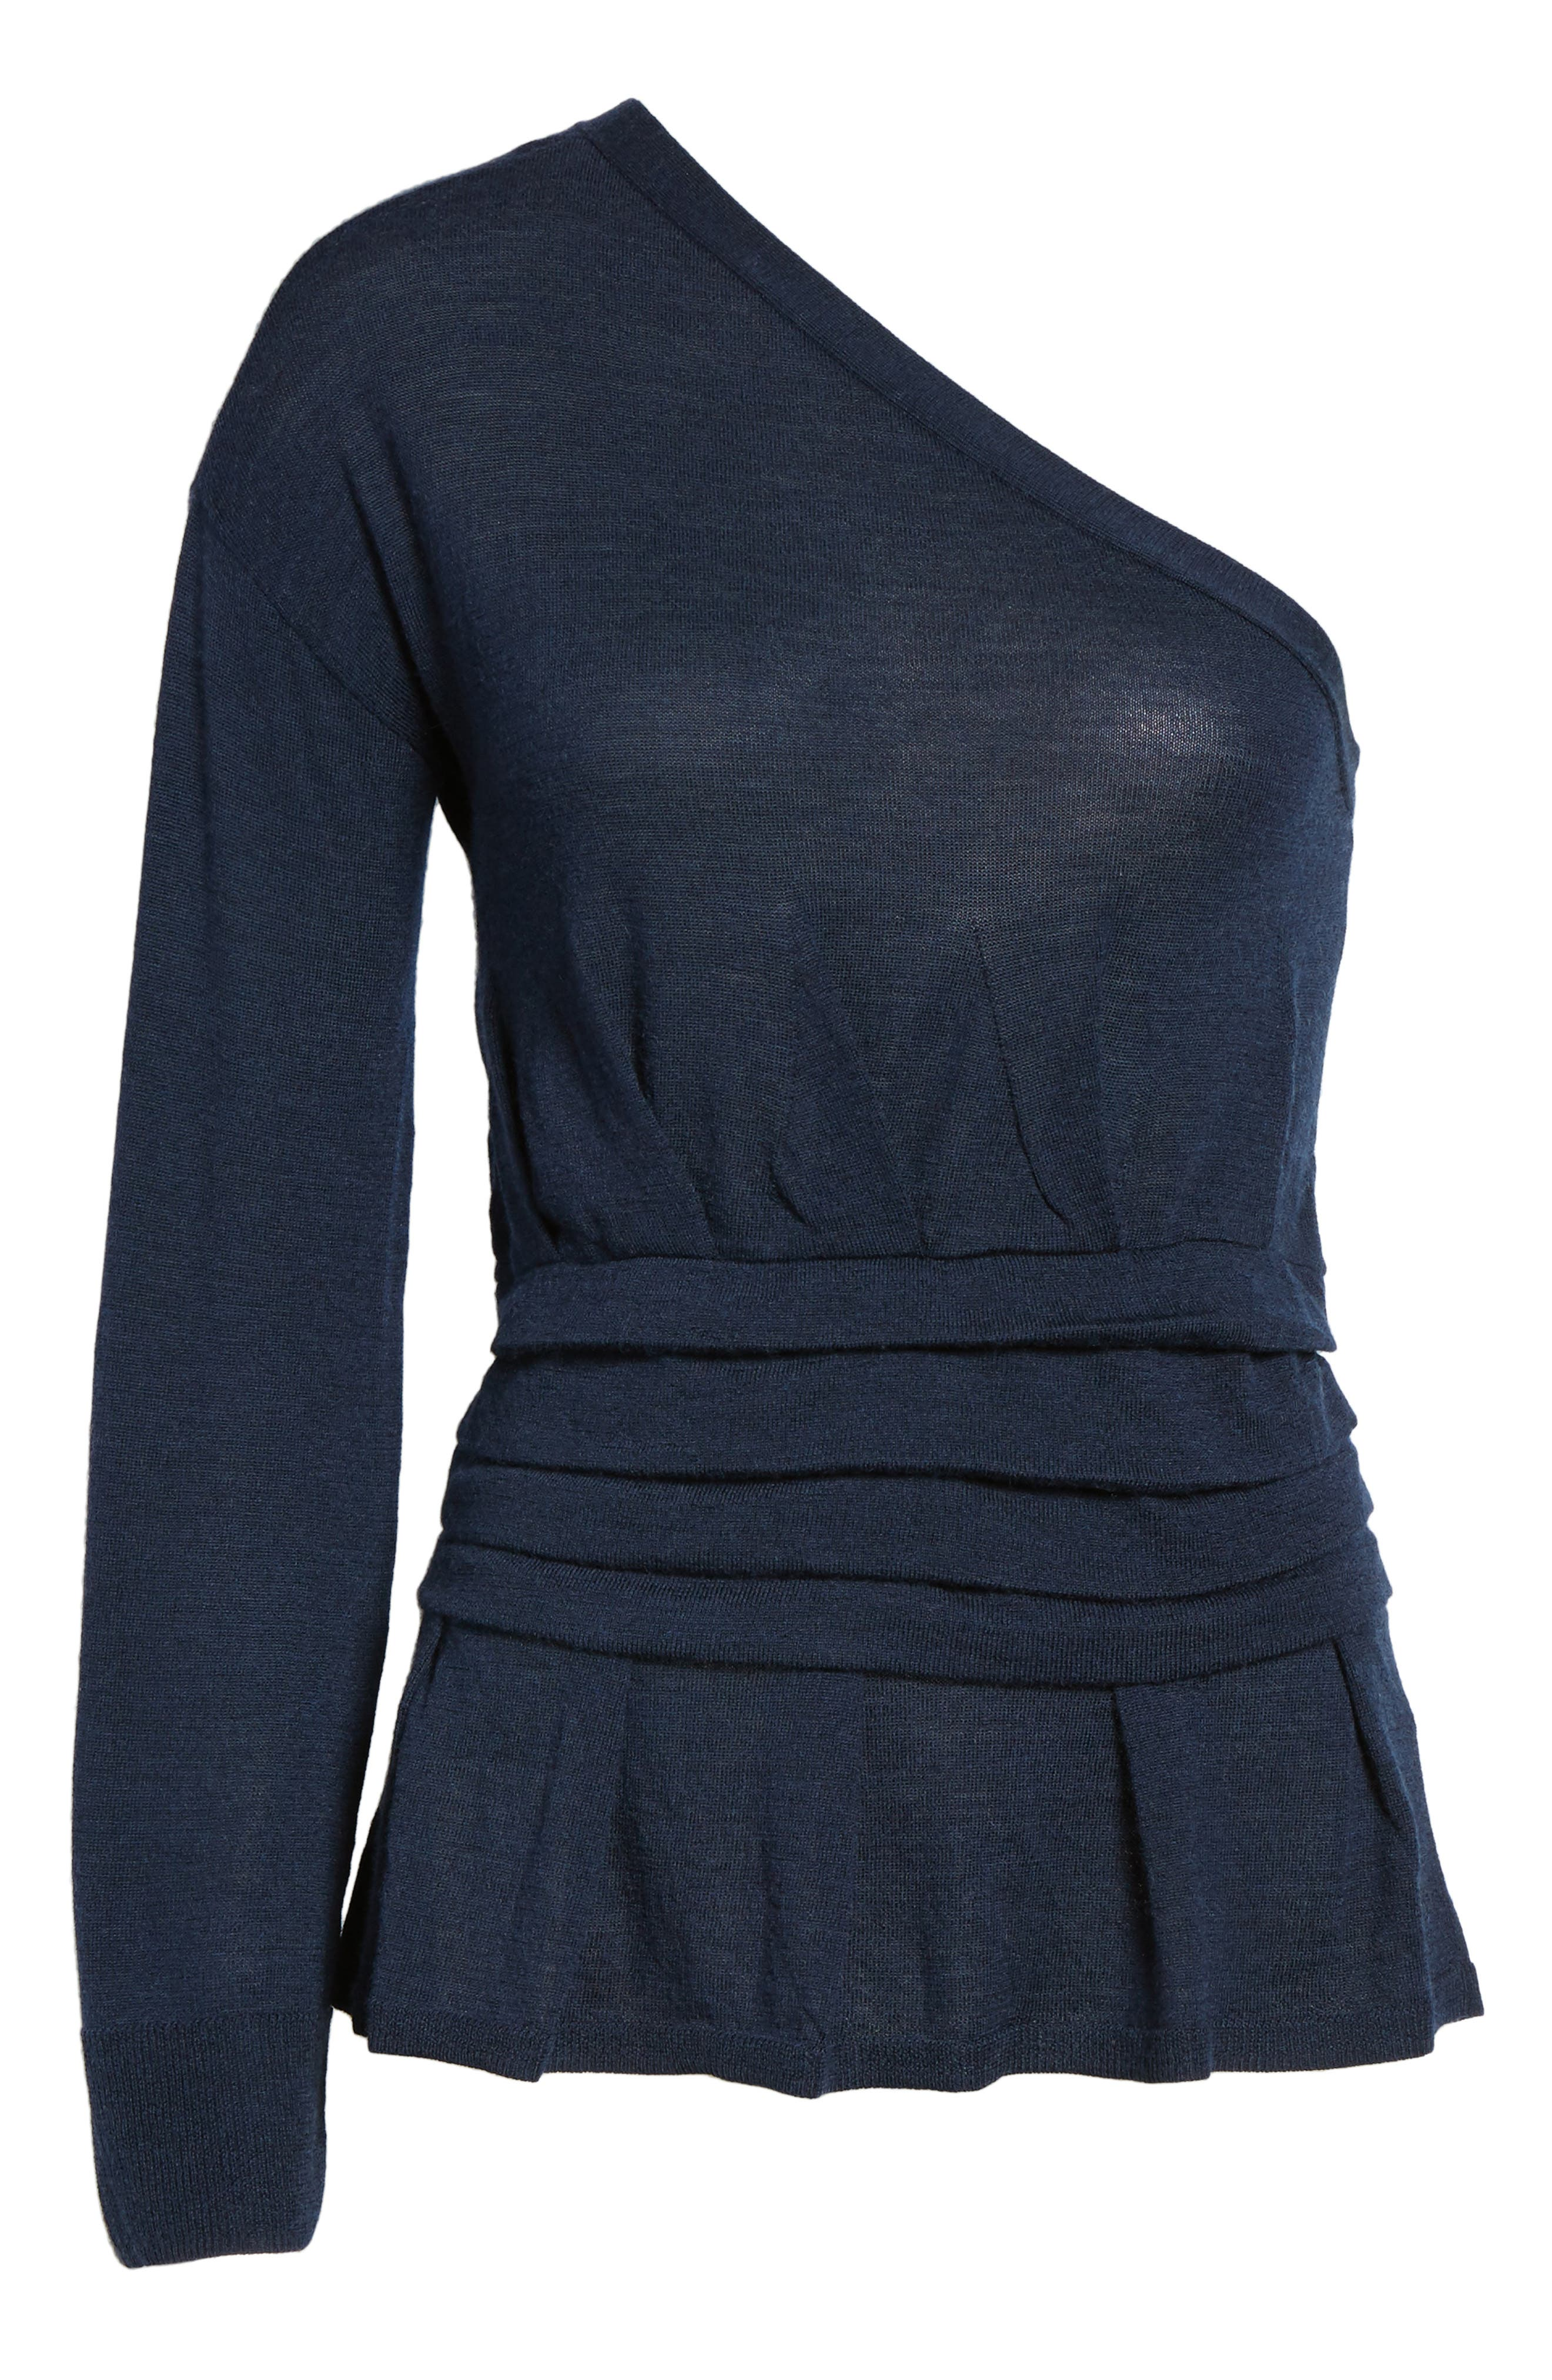 x Something Navy One-Sleeve Sweater,                             Alternate thumbnail 6, color,